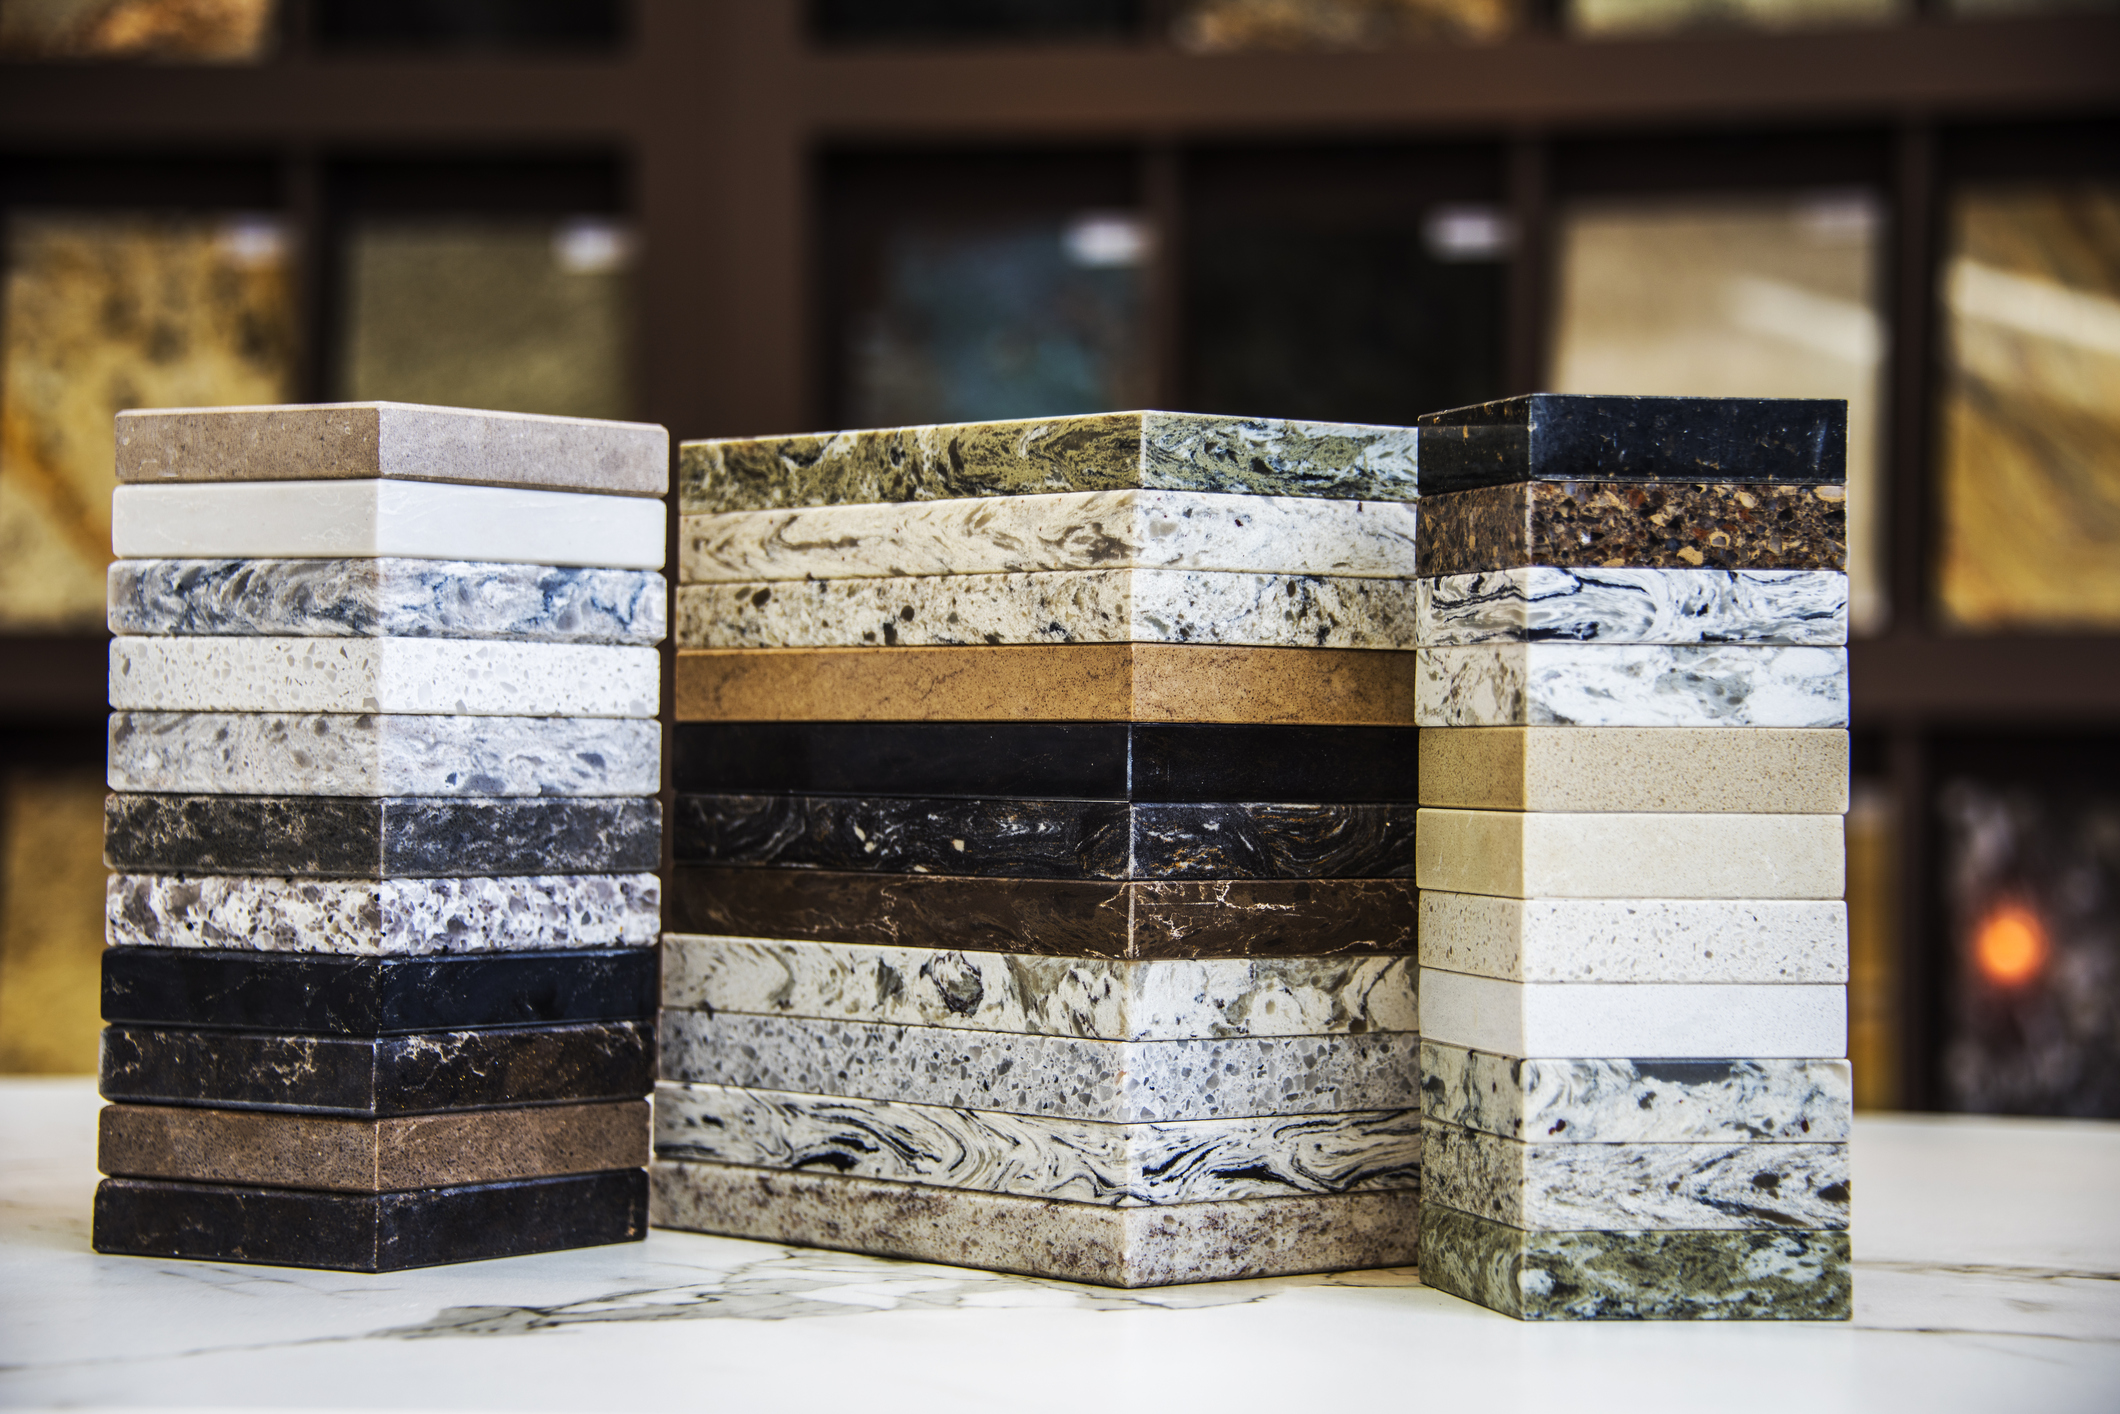 Cool Summer Vibes Inspire These Looks For Your Countertops This May Quartz Miami